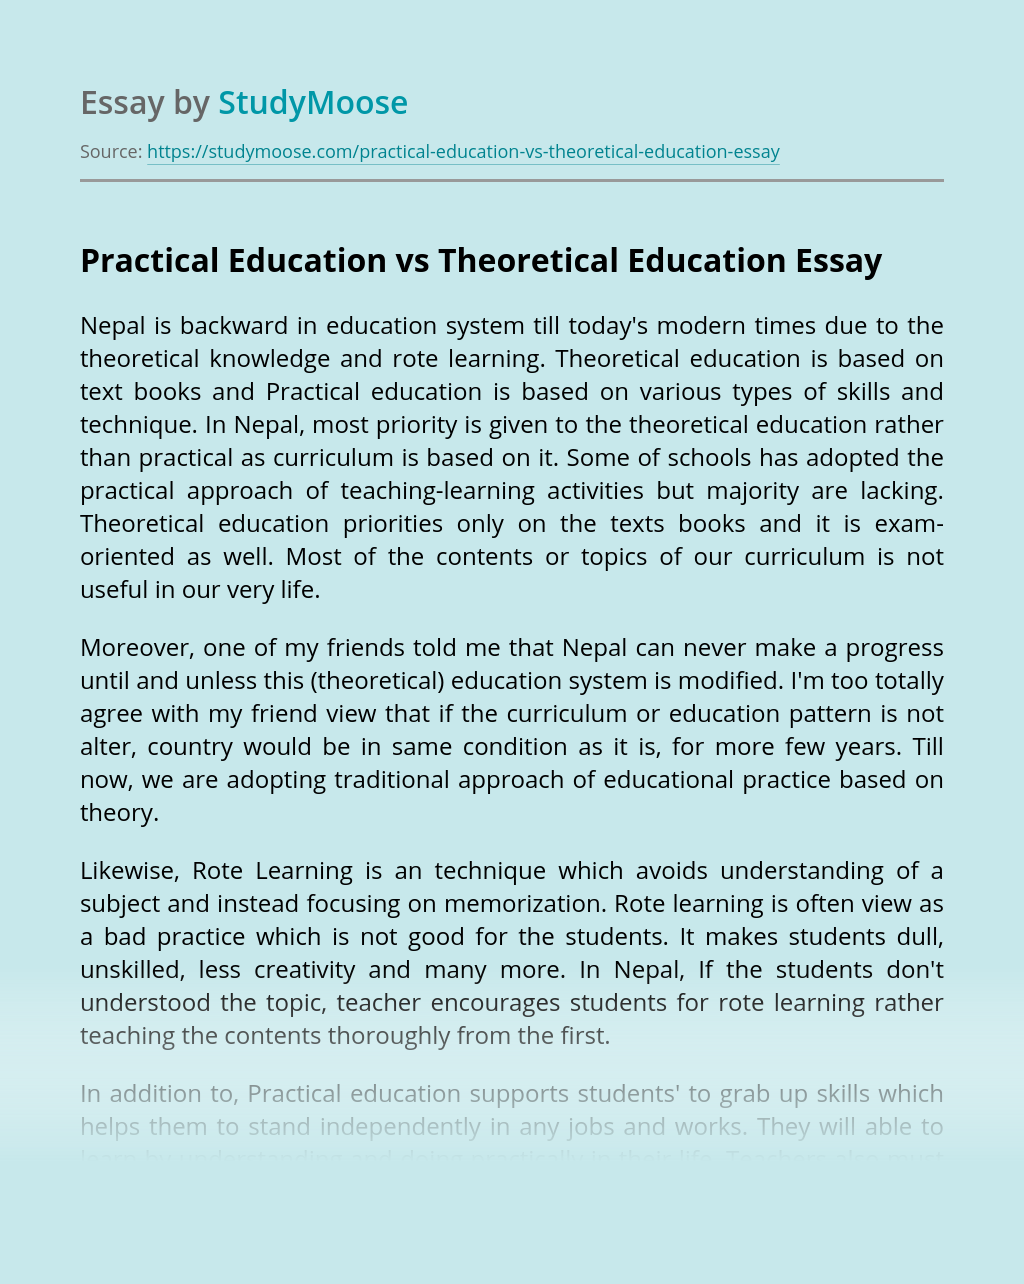 Practical Education vs Theoretical Education